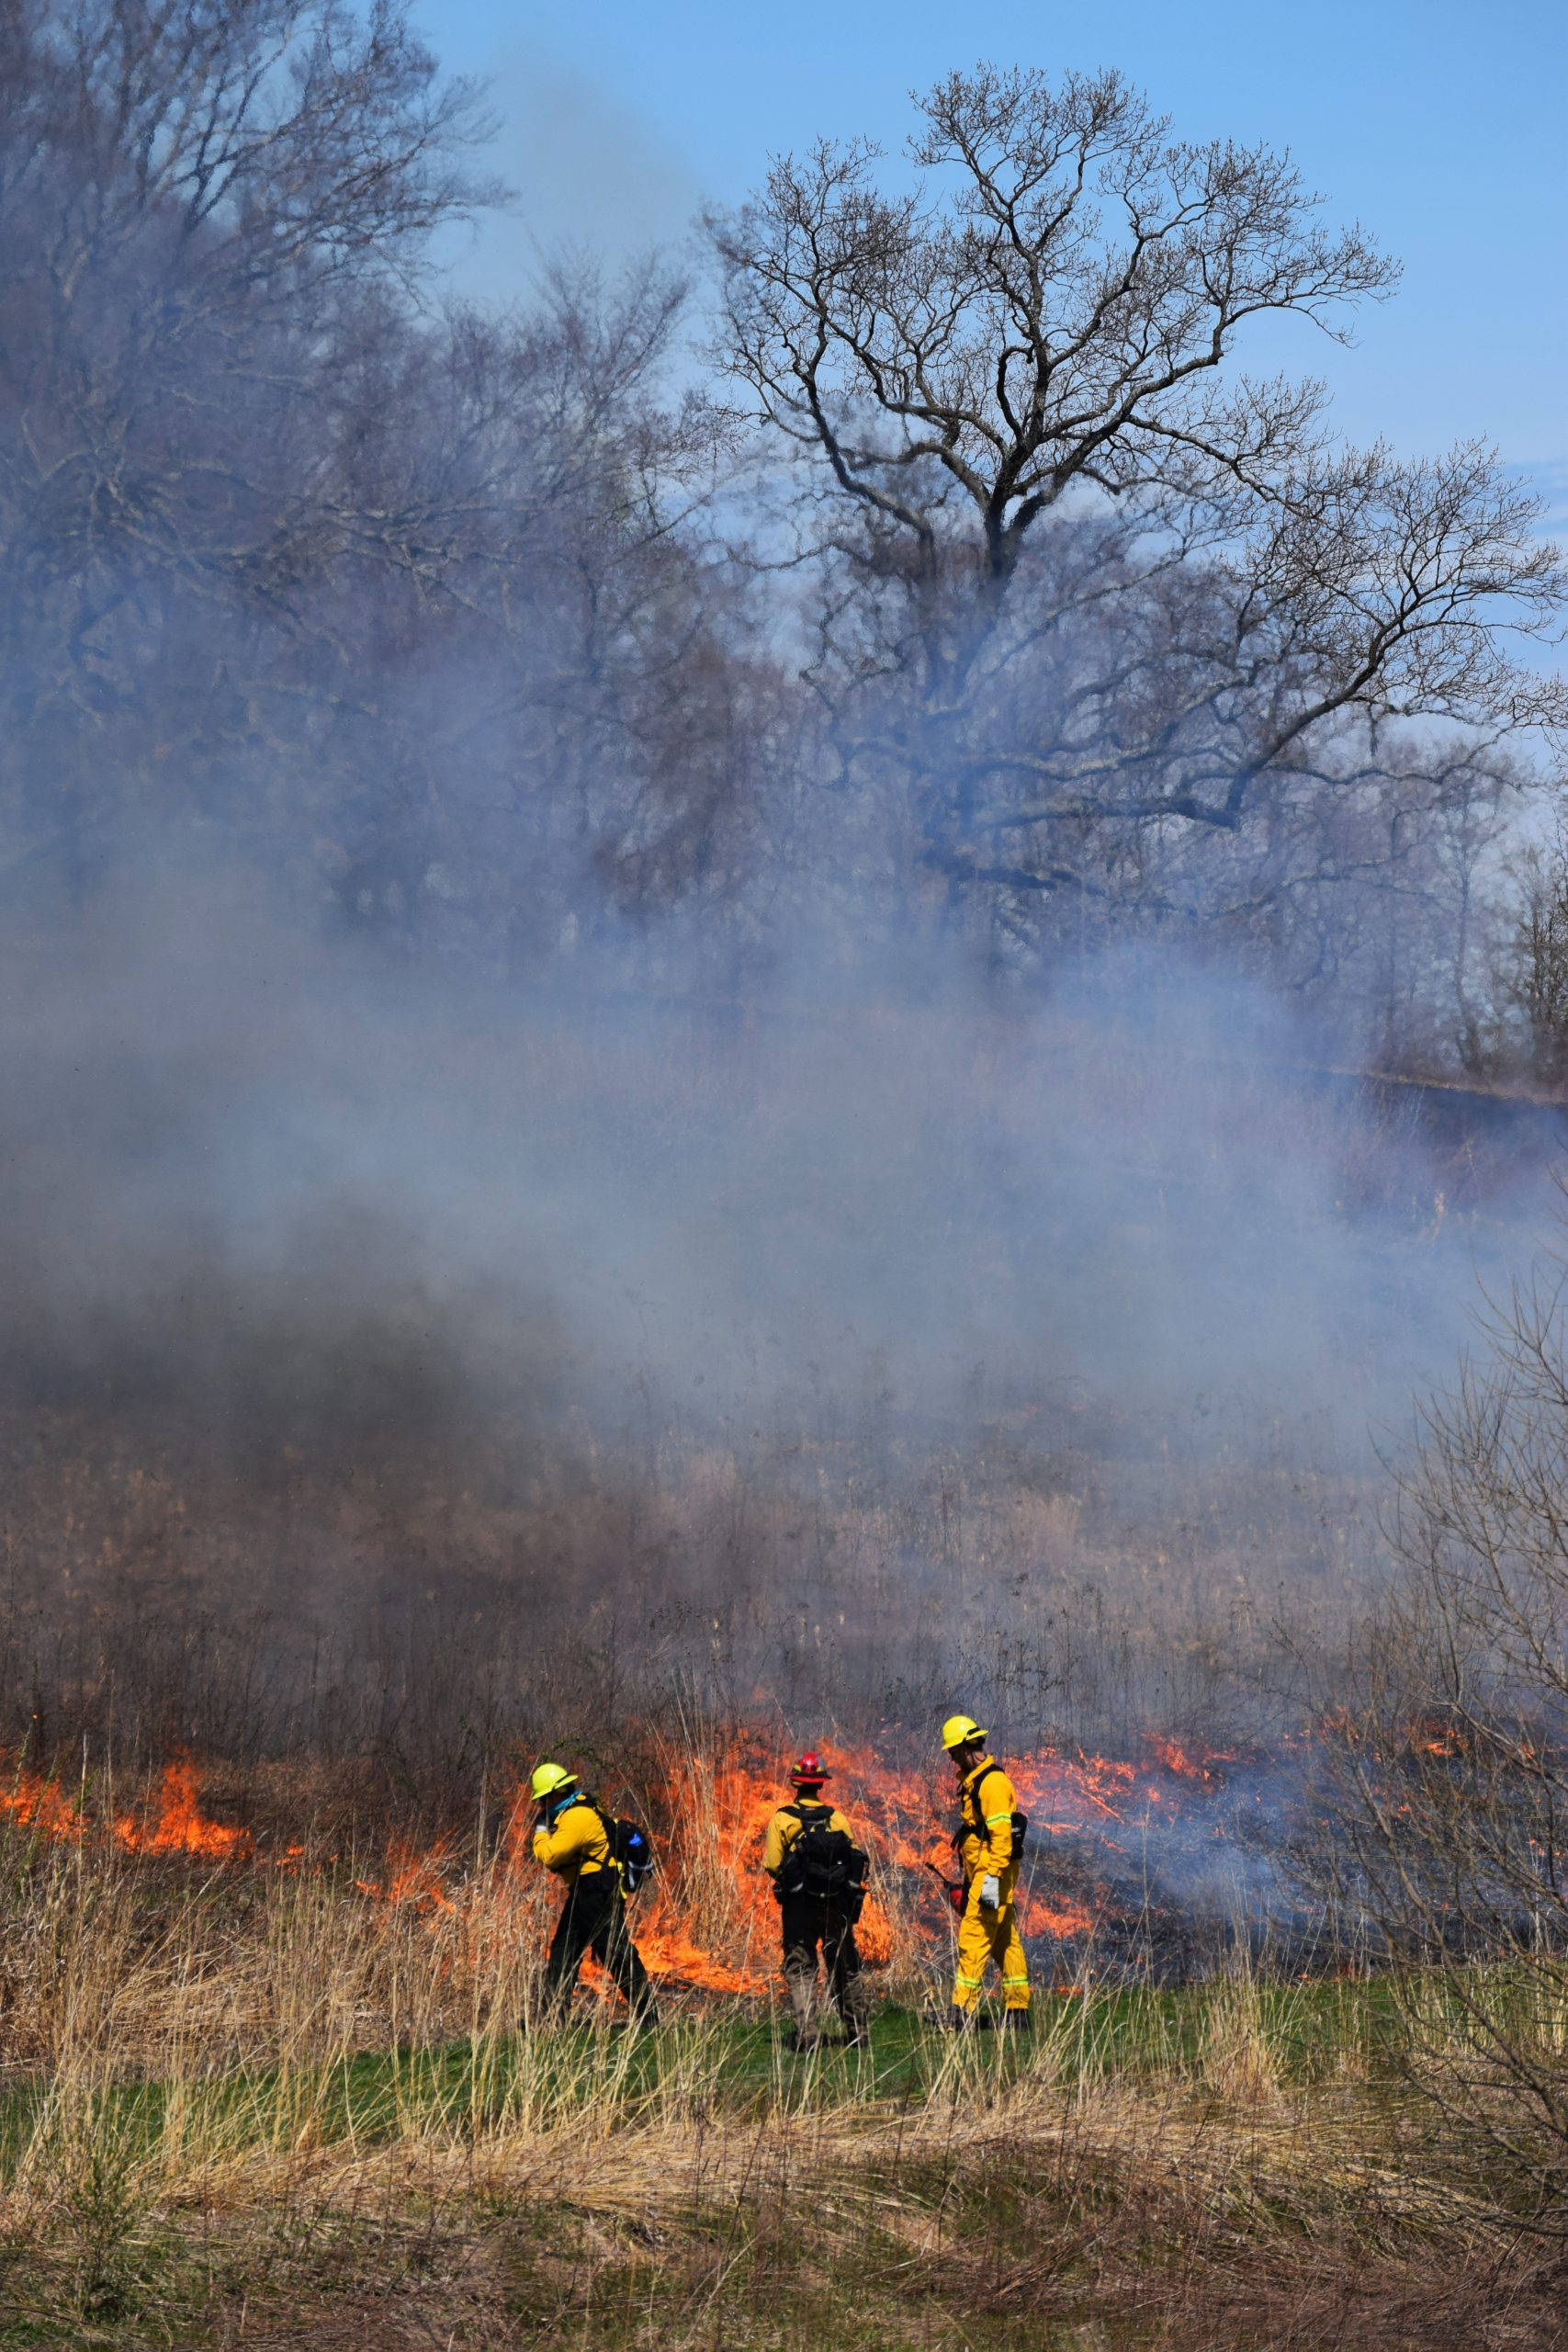 Crew members participate in a prescribed burn in the Meadow Garden at Longwood Gardens.